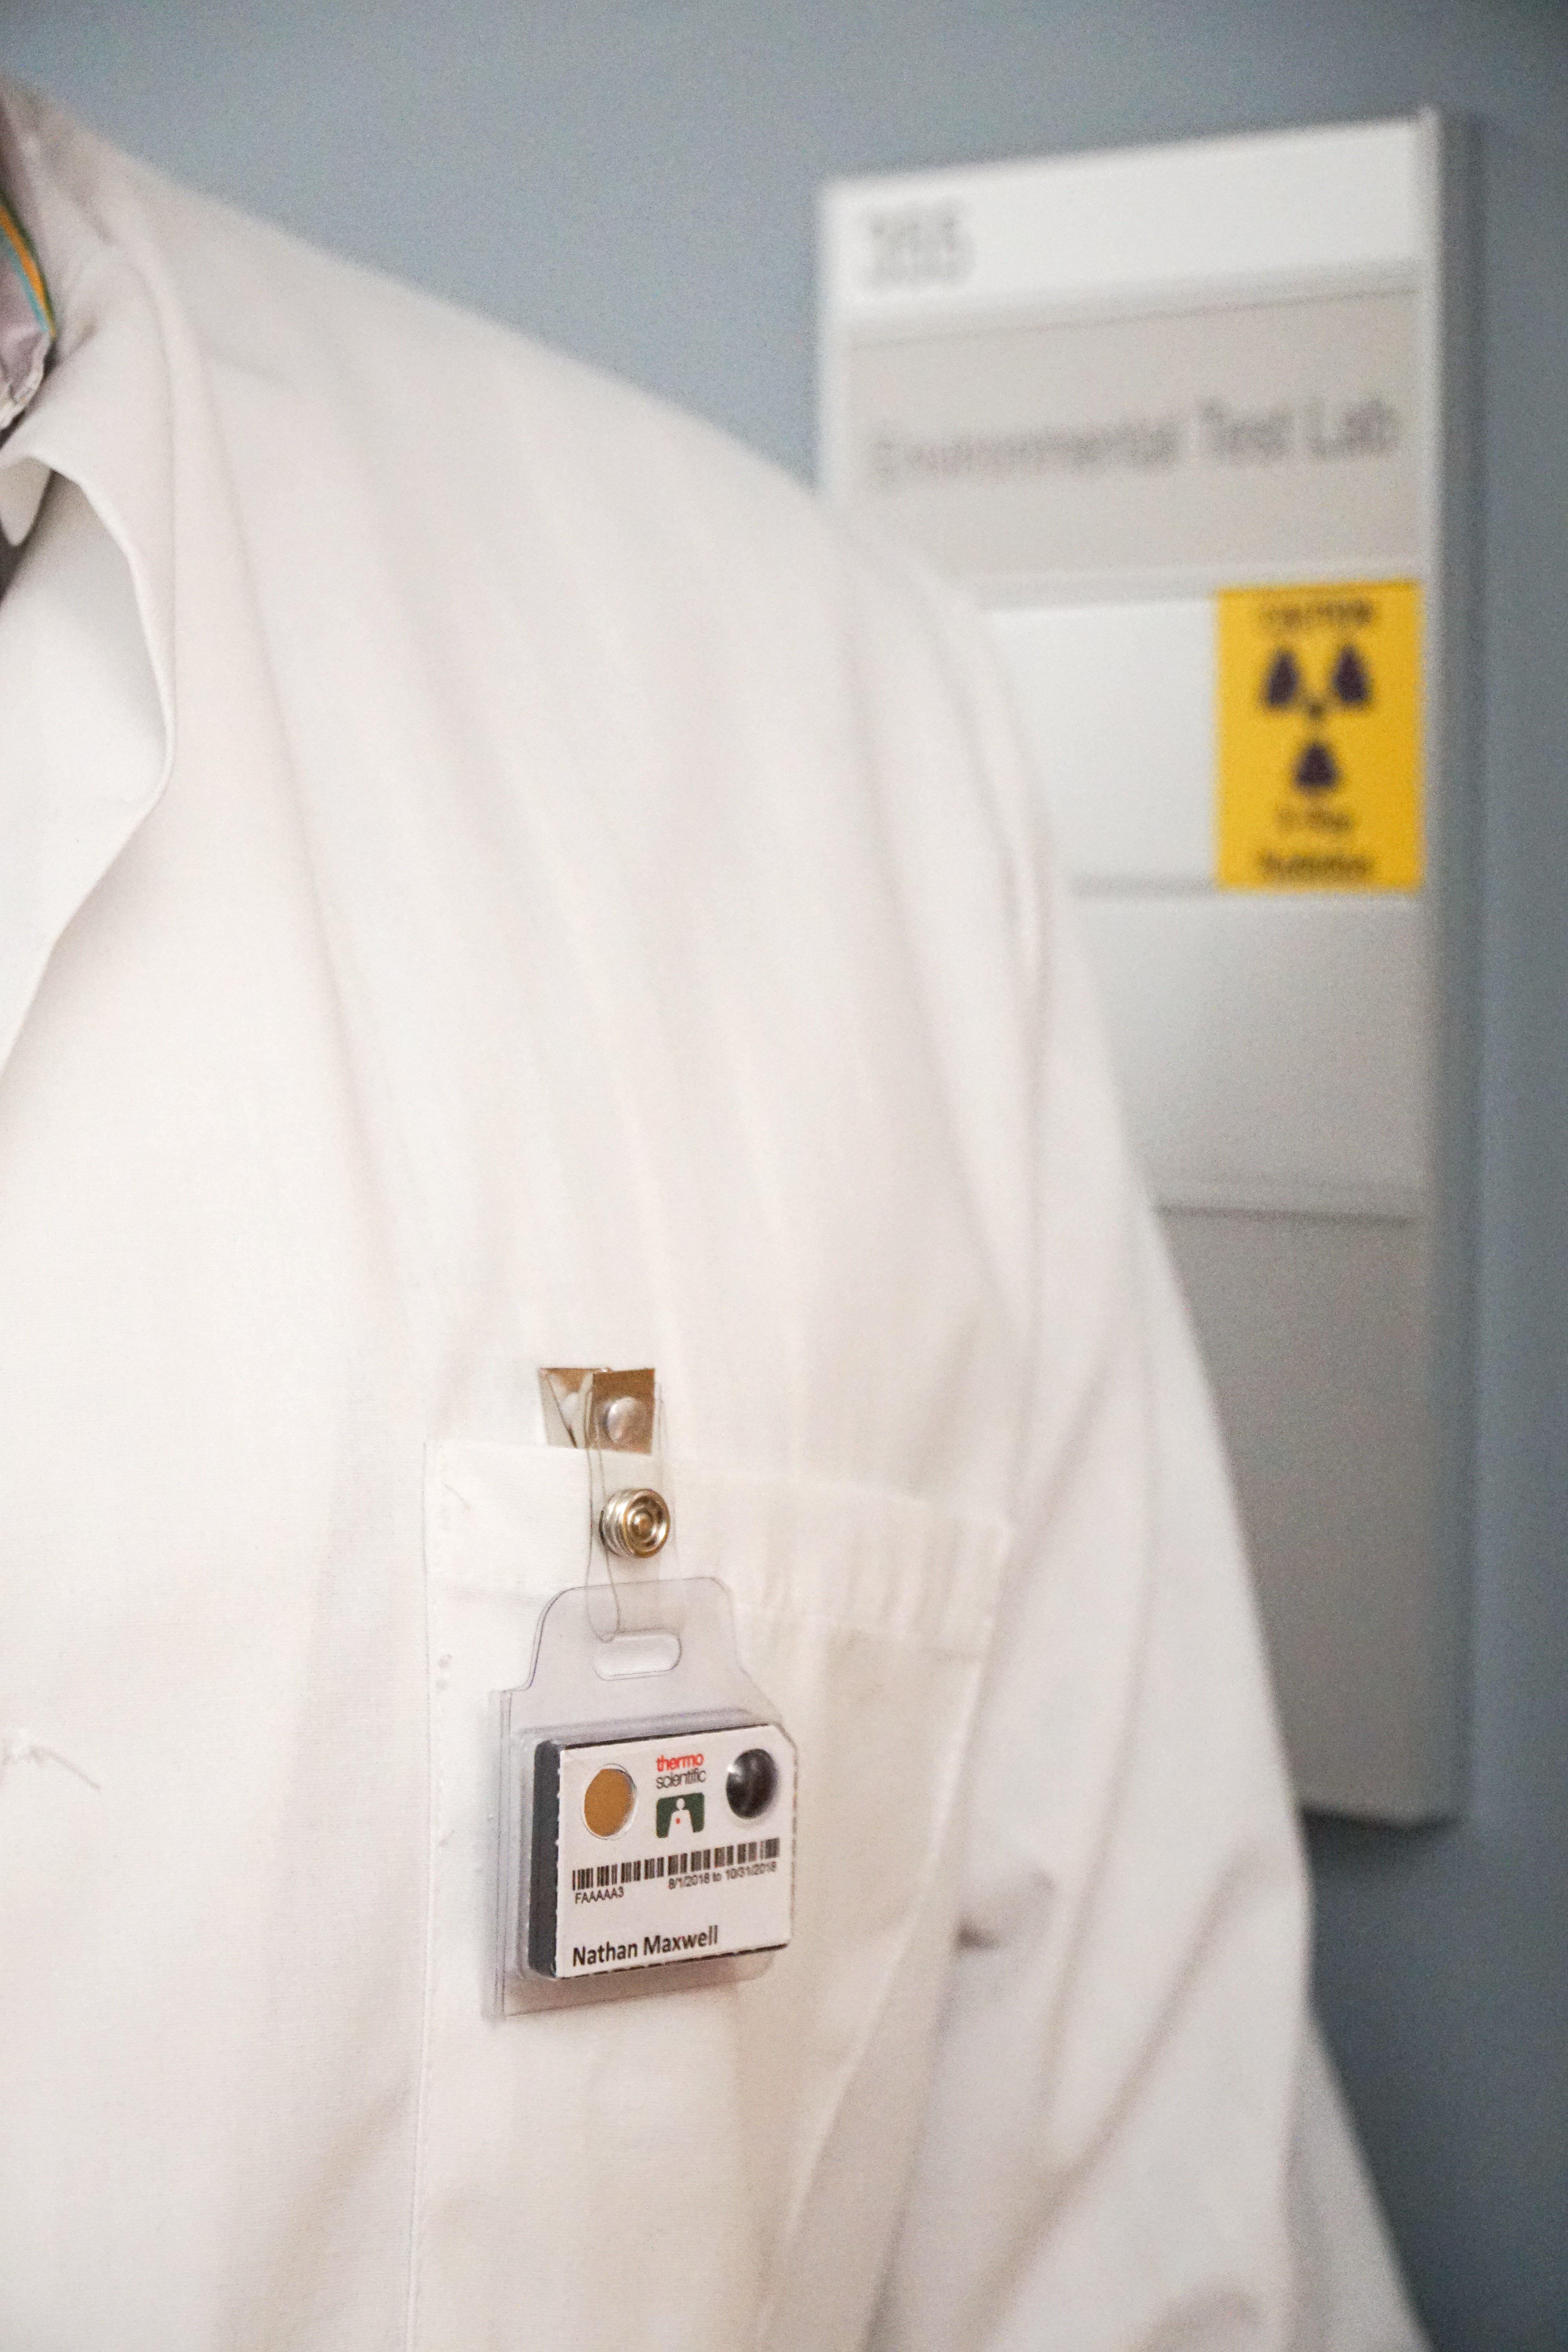 Wearing personal radiation measurement badges to measure dose exposure is crucial.